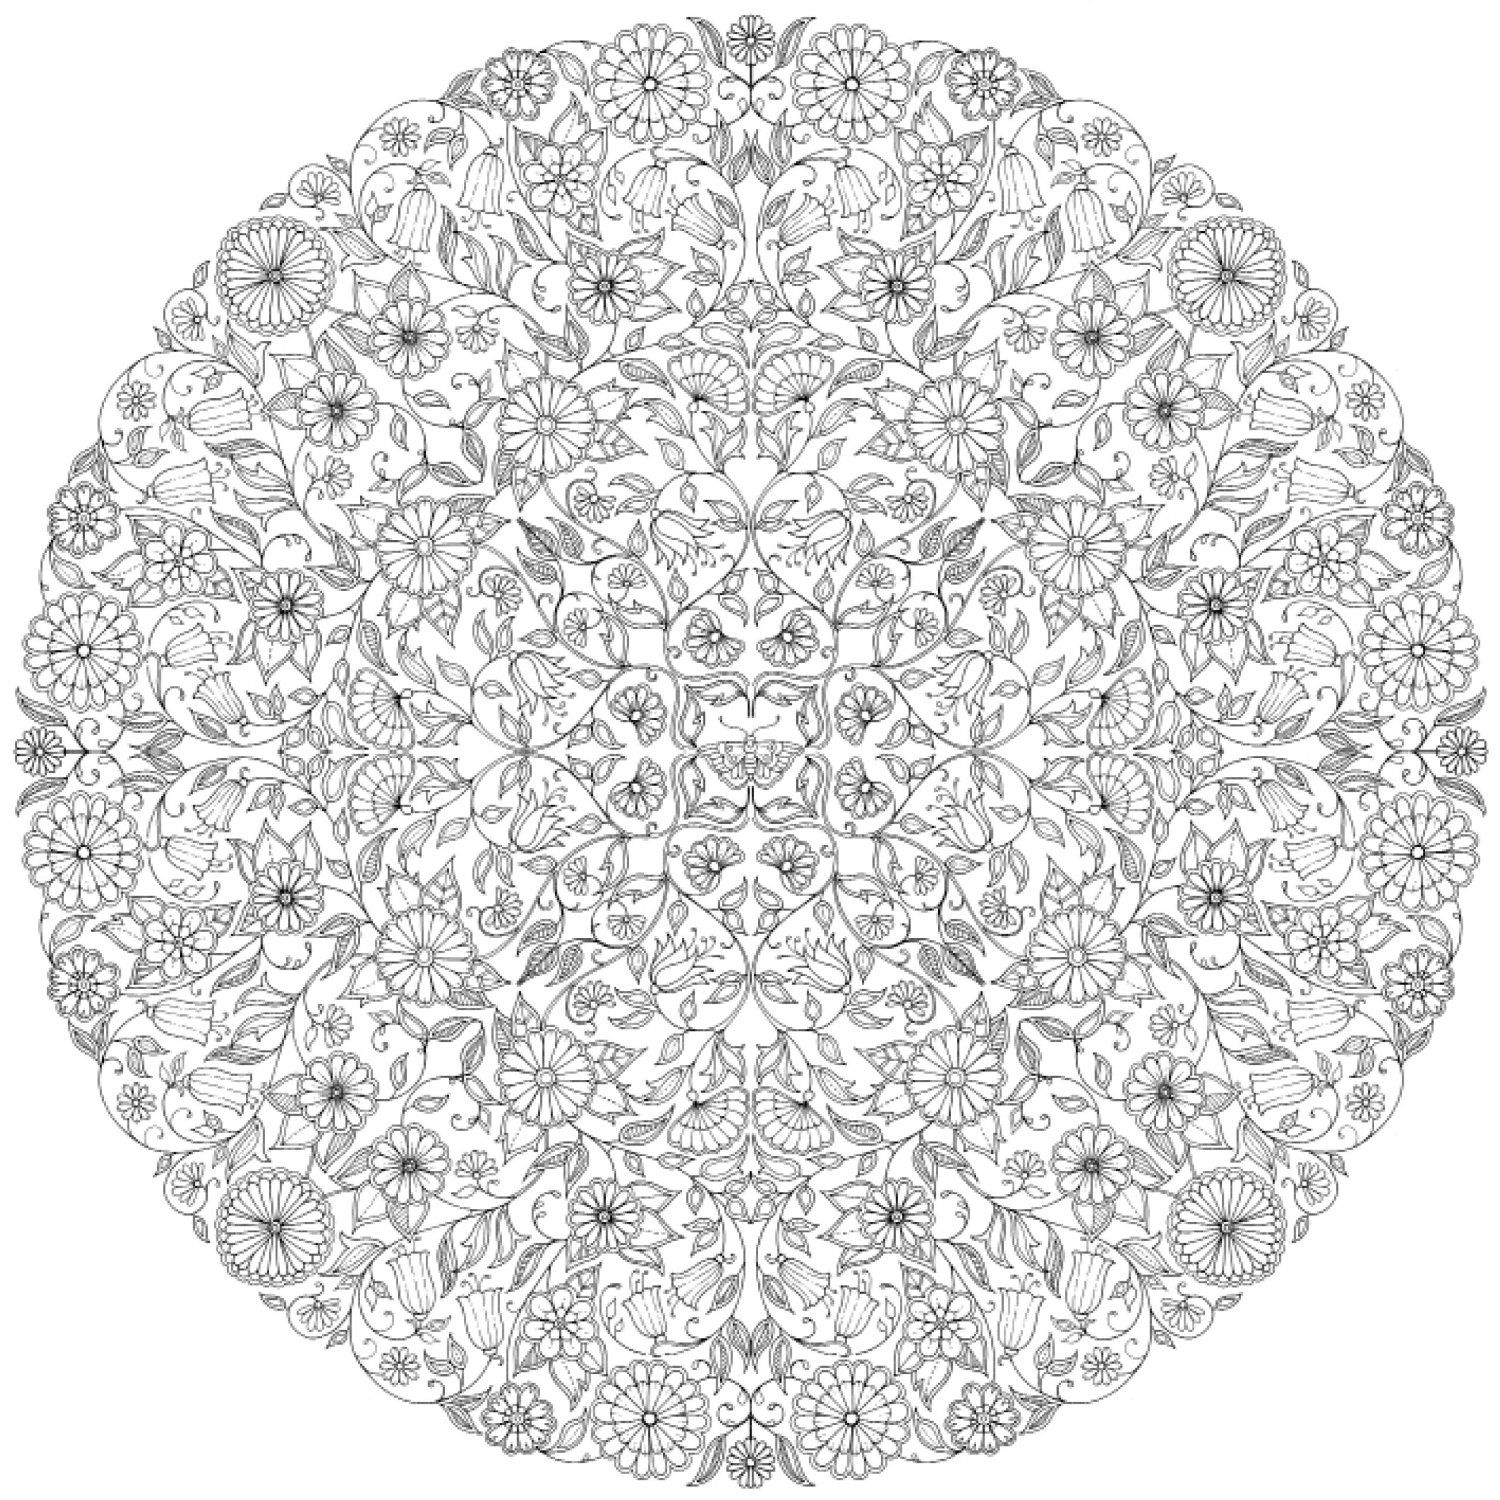 coloriage adulte a imprimer - Coloriage Mandala Adulte